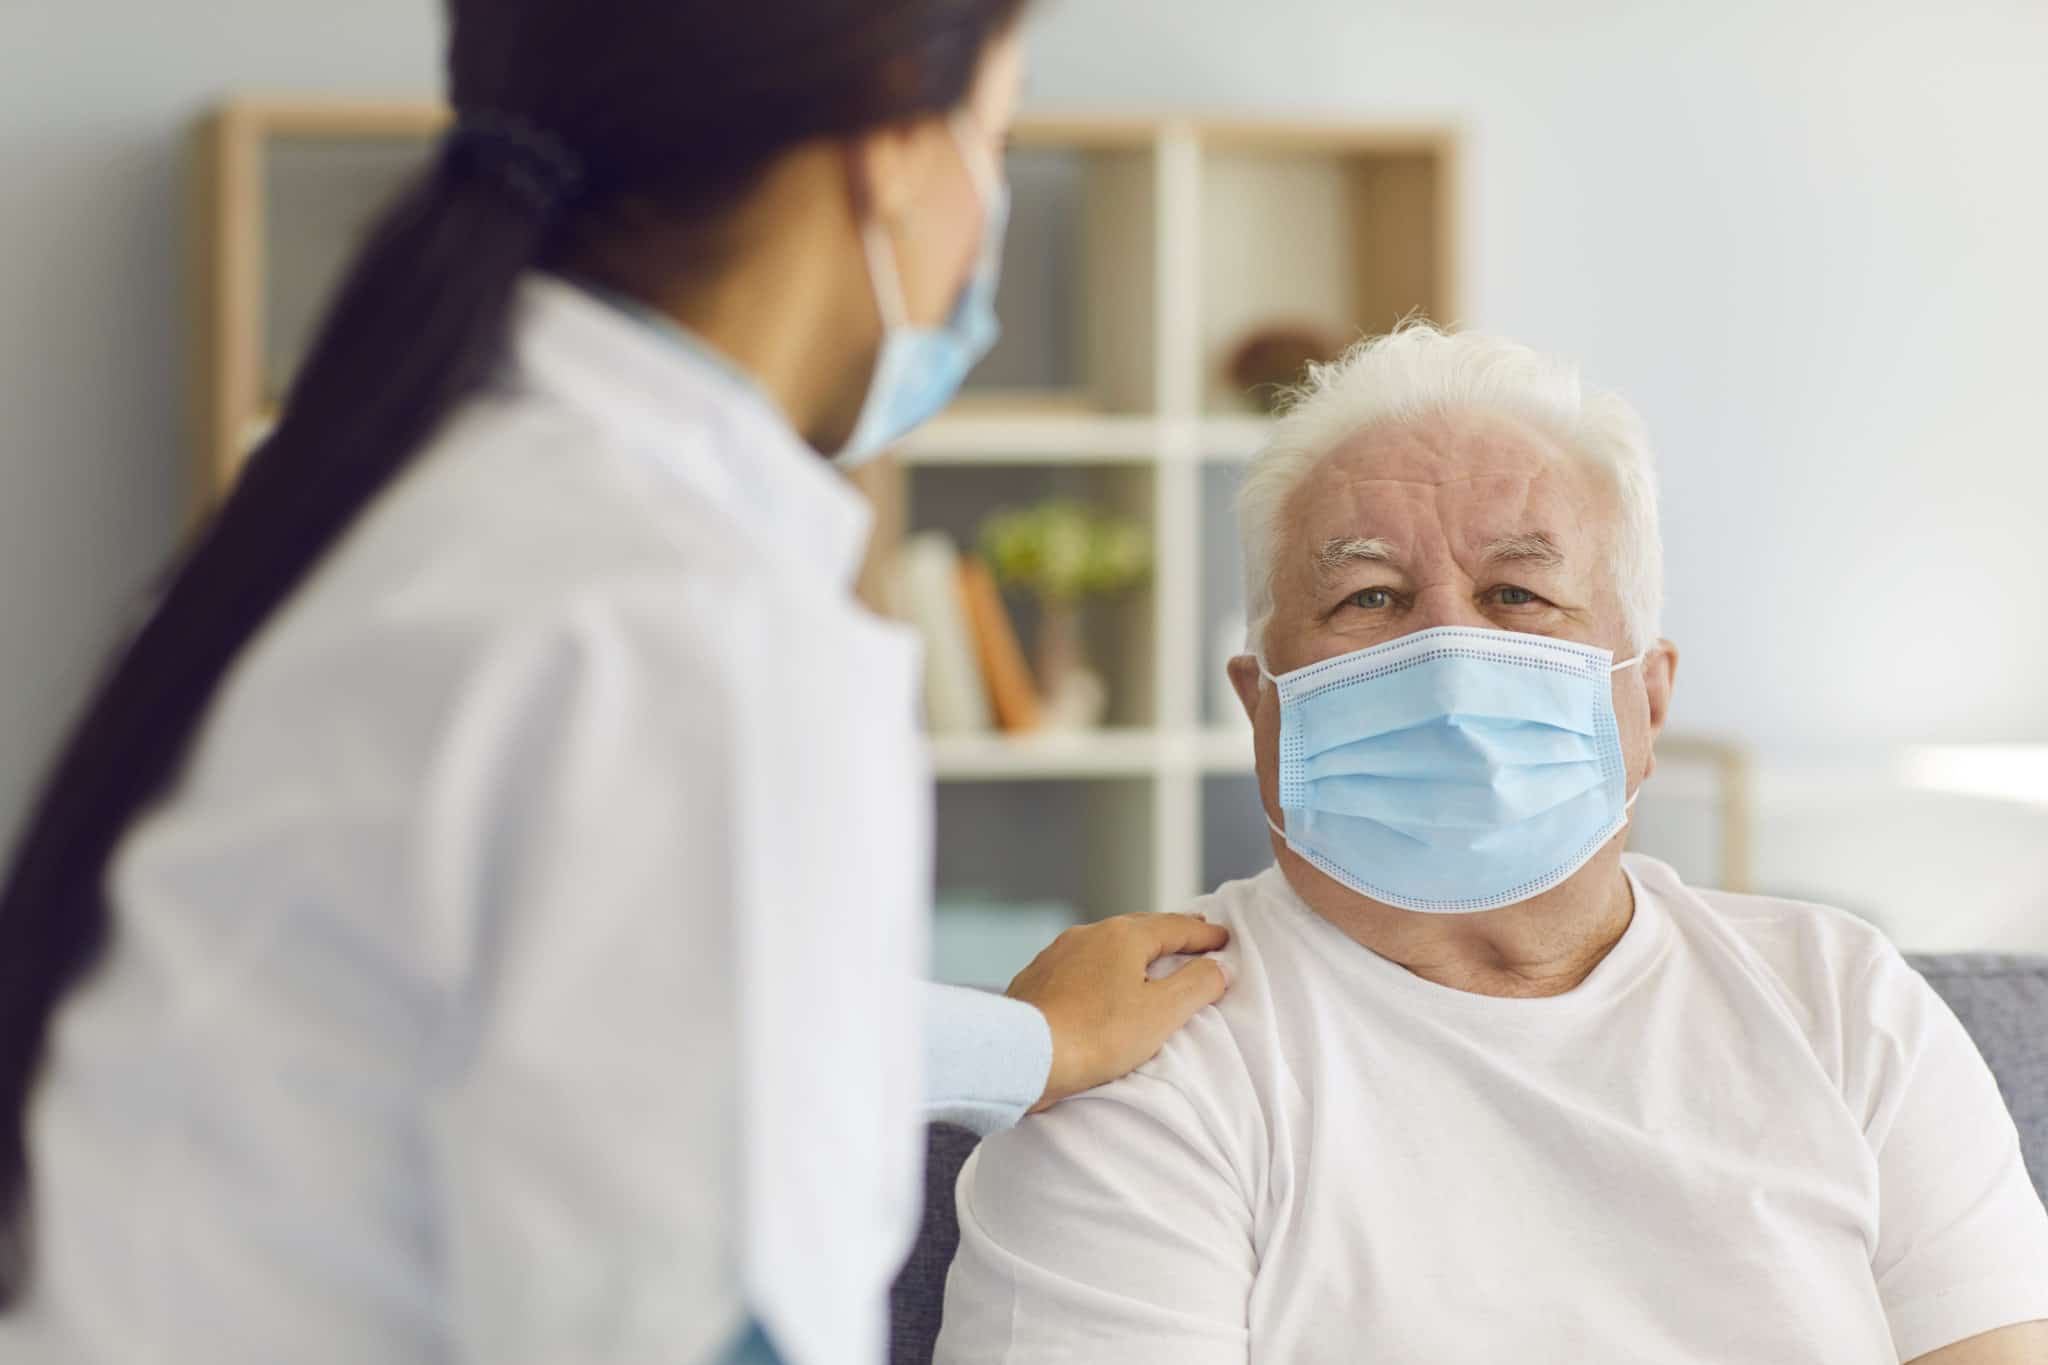 People in protective masks. Woman doctor visits the elderly man and provides him with support and talks to him during the quarantine. Nurse visits a man who is at risk.